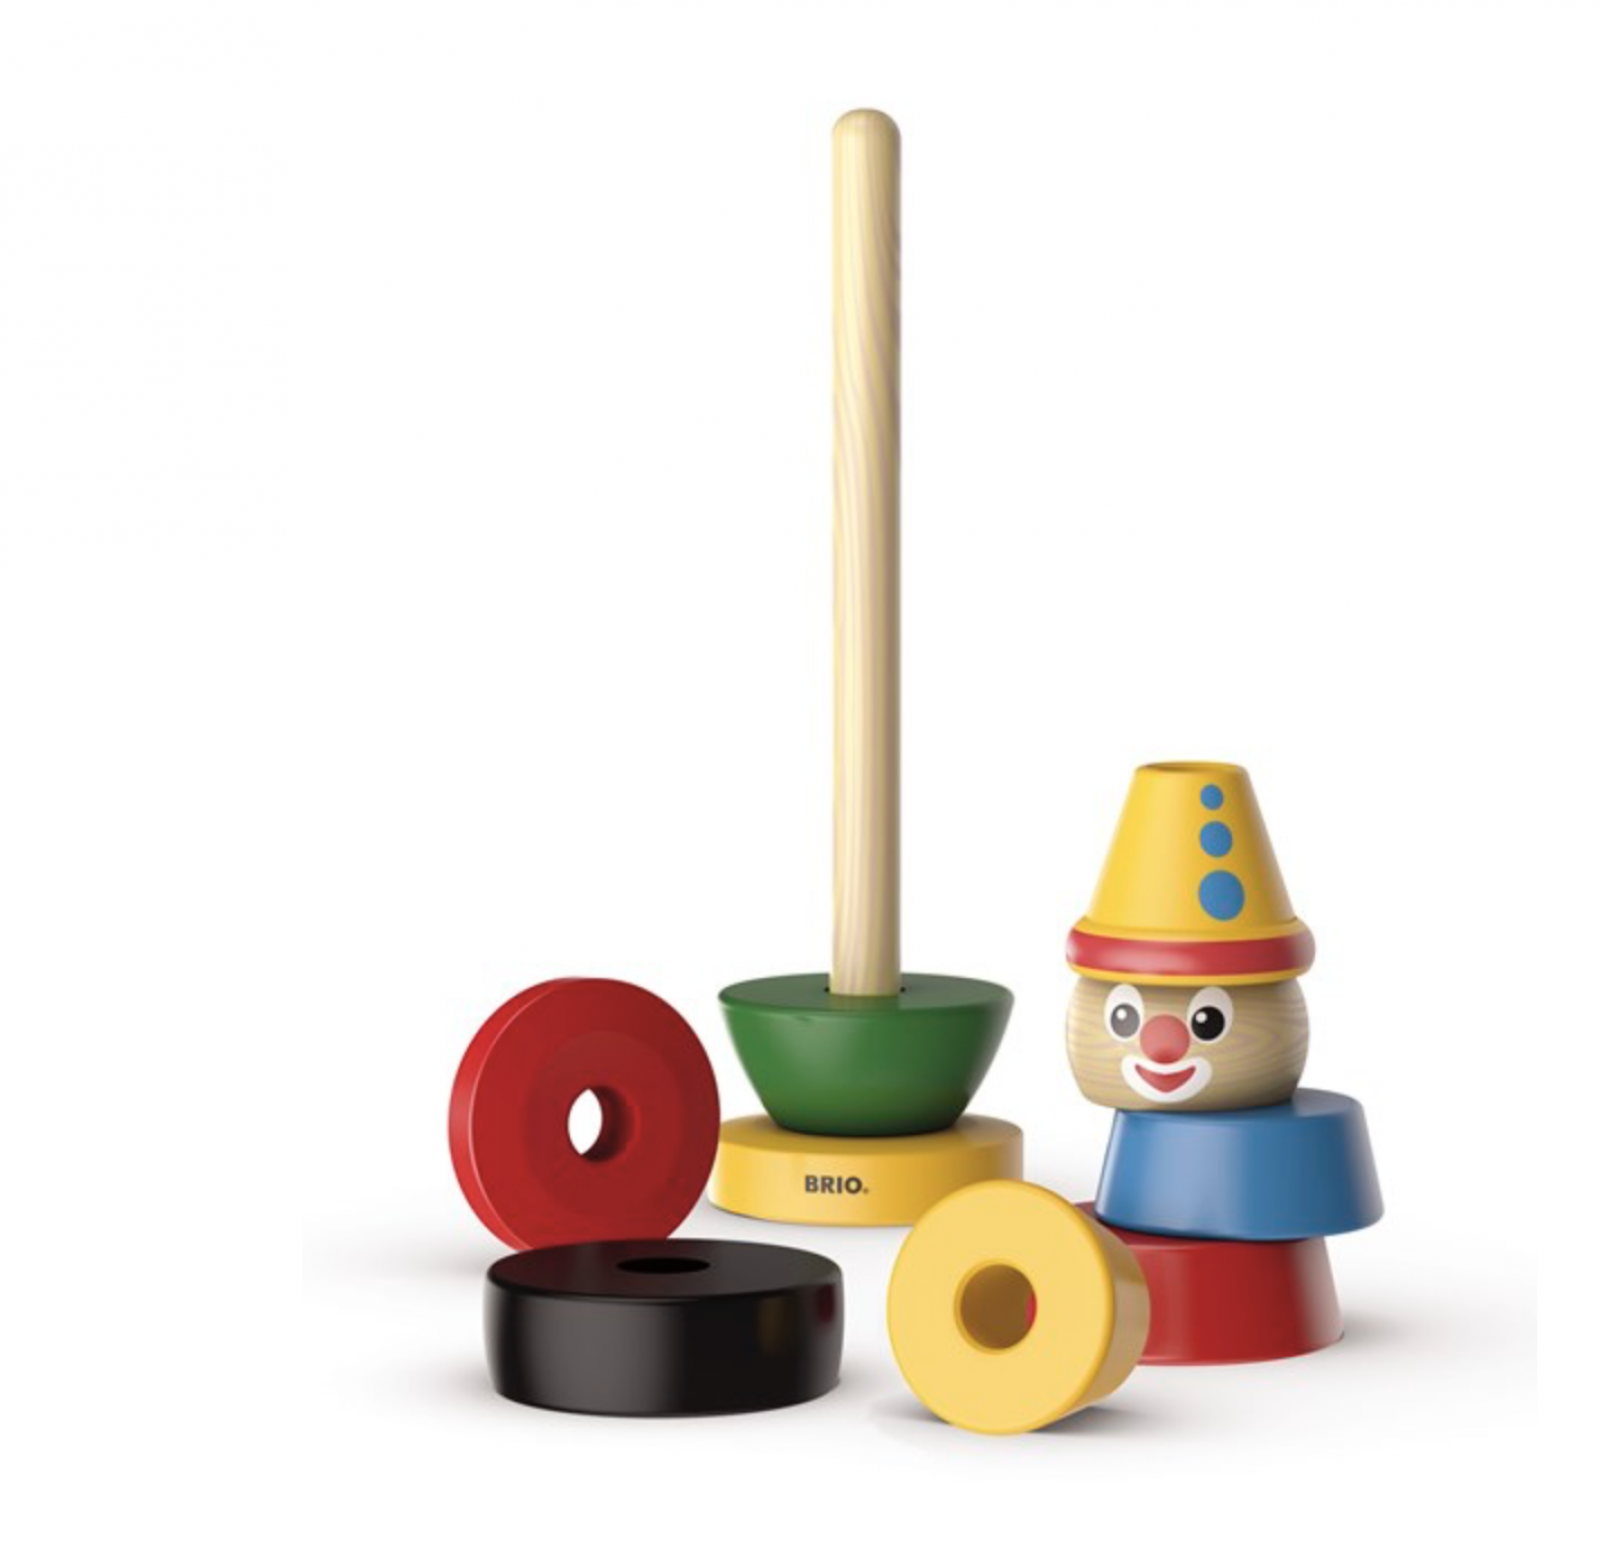 Stacking Clown Wooden Toy By BRIO 1+ thumbnails